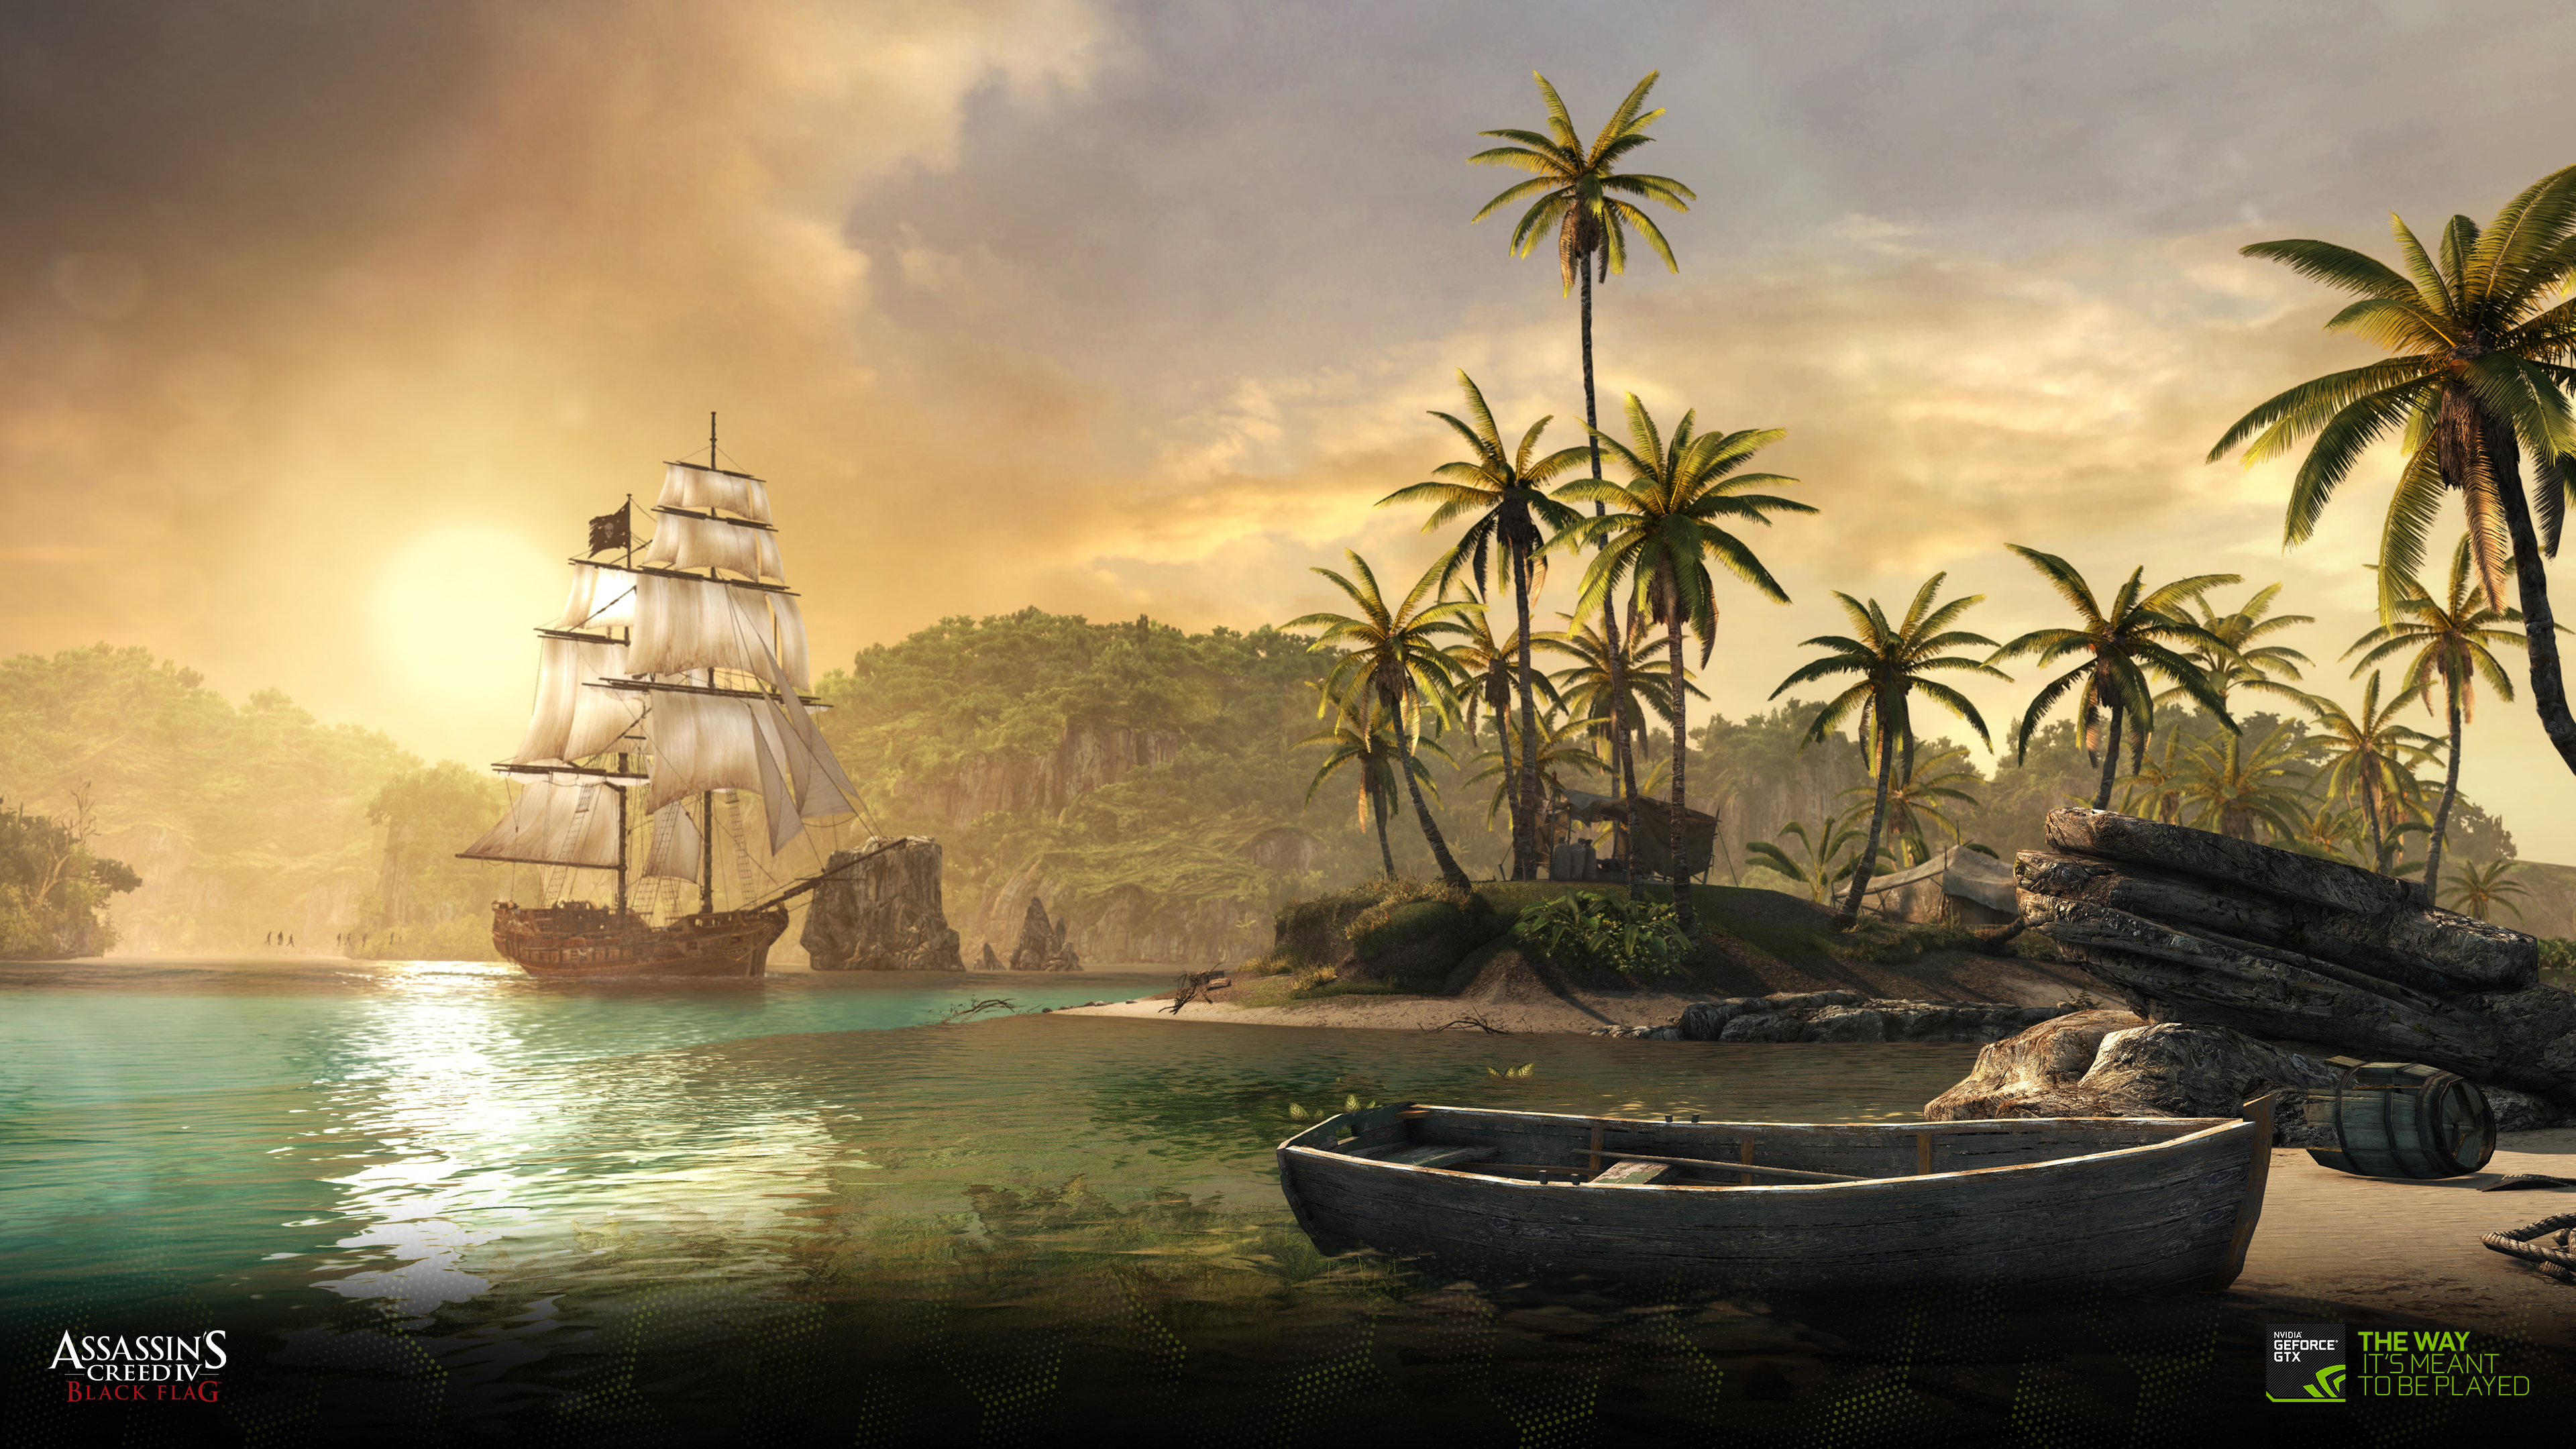 Download The Assassins Creed IV Black Flag Wallpapers